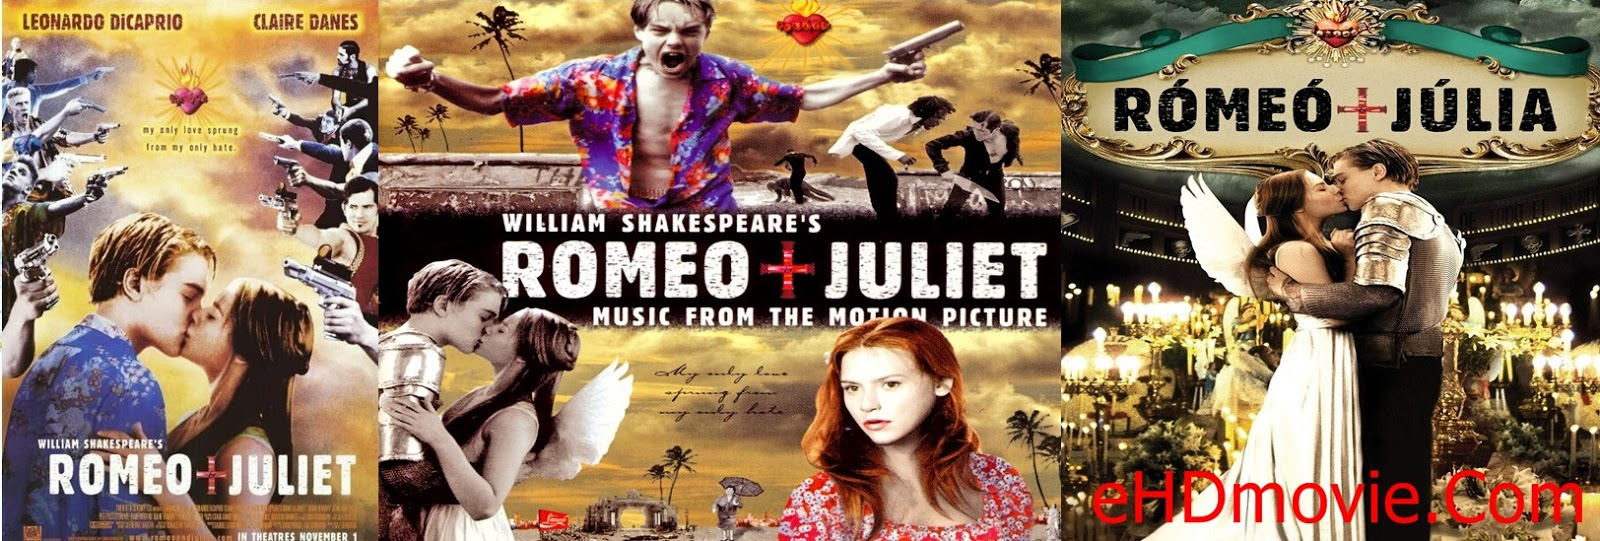 Romeo and juliet 1996 full movie download